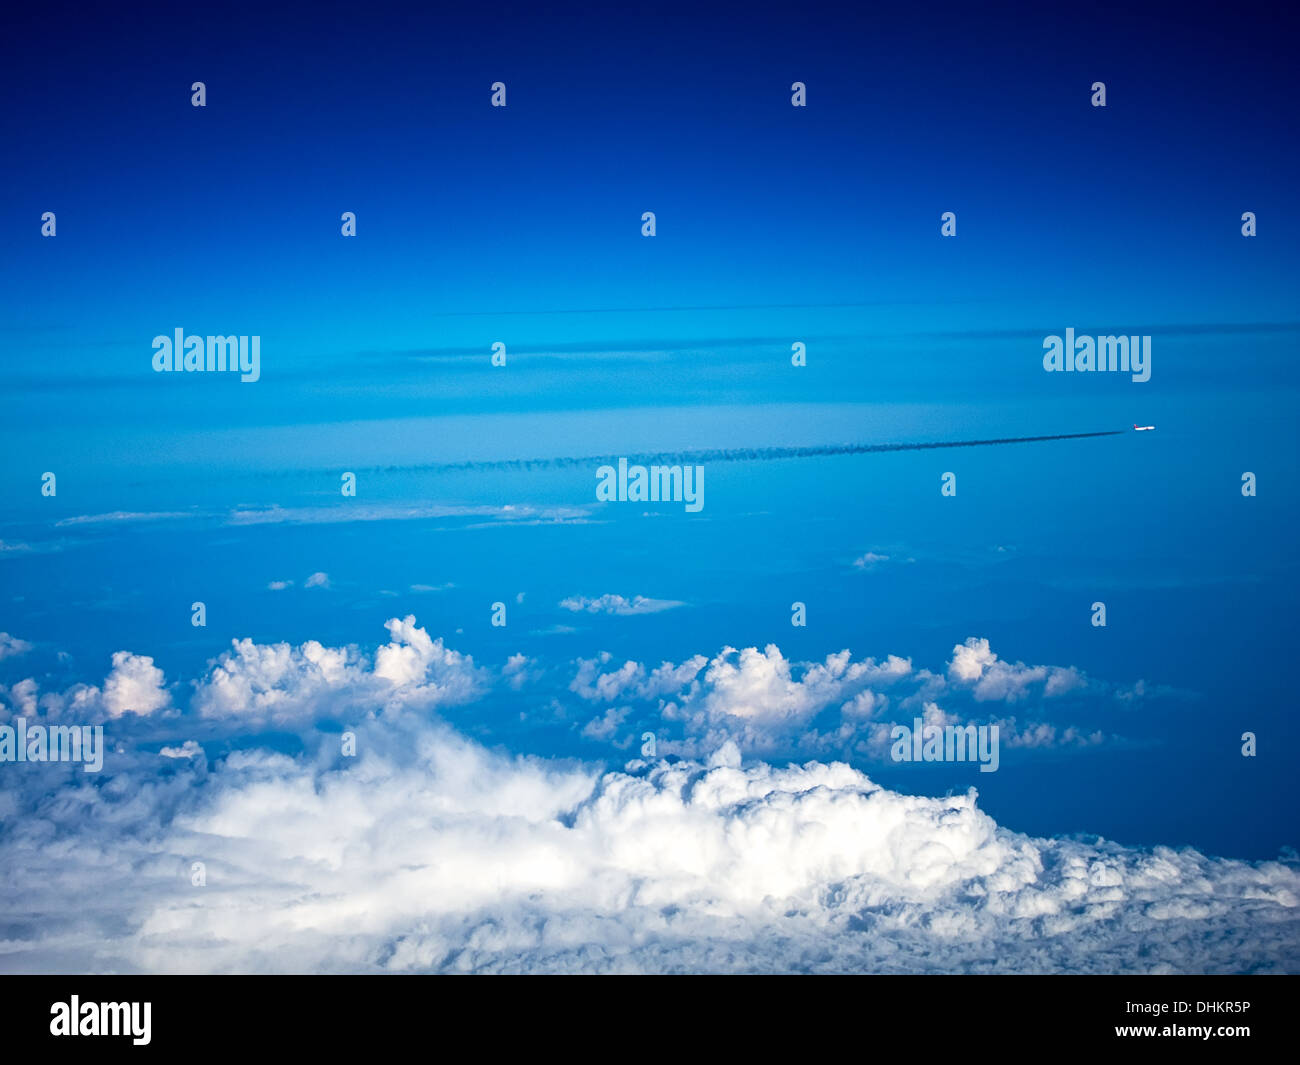 A view from heaven - Stock Image